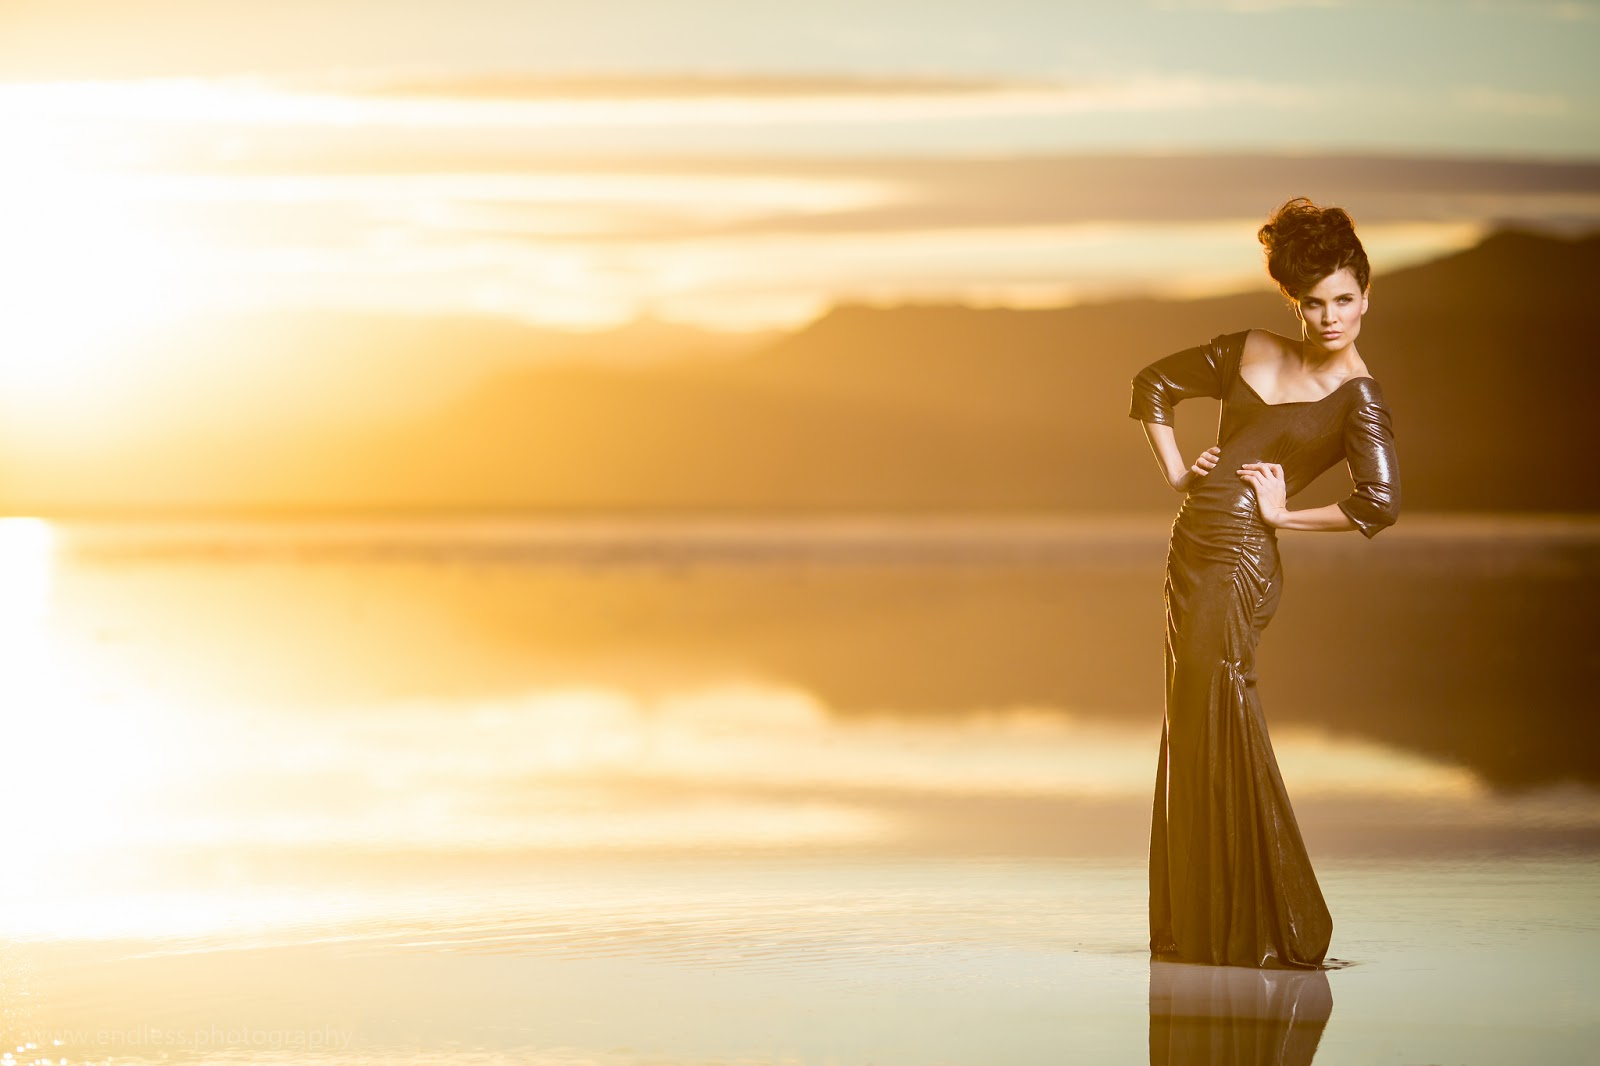 Salt Flats, Reflections, Model, Dress, Designer, Custom, Photography, Photographer, Sunset, Blue, Yellow, Endless Photography, Mike Johnson, Carrie Purser, Mins Cake, Hair, Makeup, Inspiration, Ideas, Pictures, Portrait, Fashion